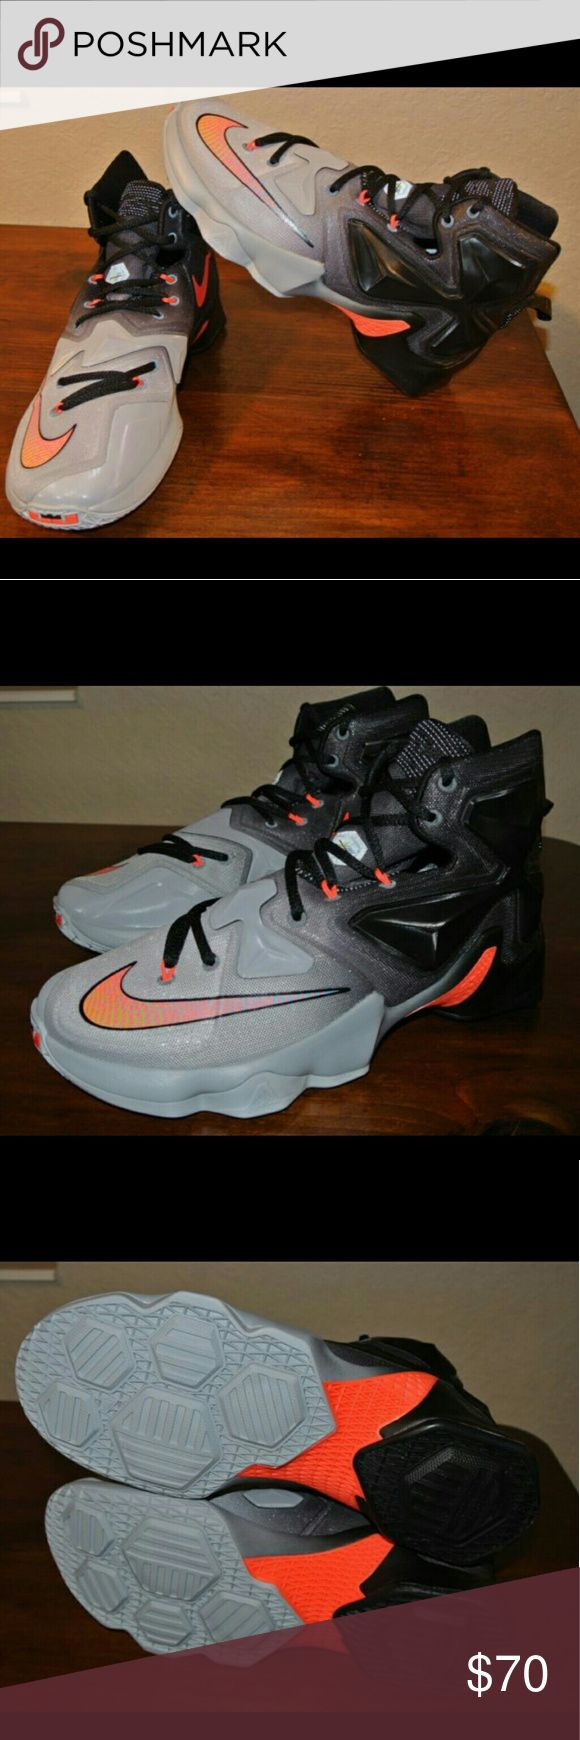 LEBRON 13 'ON COURT' Wolf Grey/Crimson/Black NIKE LEBRON 13 'ON COURT' Wolf Grey/Crimson/Black  In great condition  100% Authentic  WORN 2 TIMES, (10 OUT OF 10) Nike Shoes Sneakers